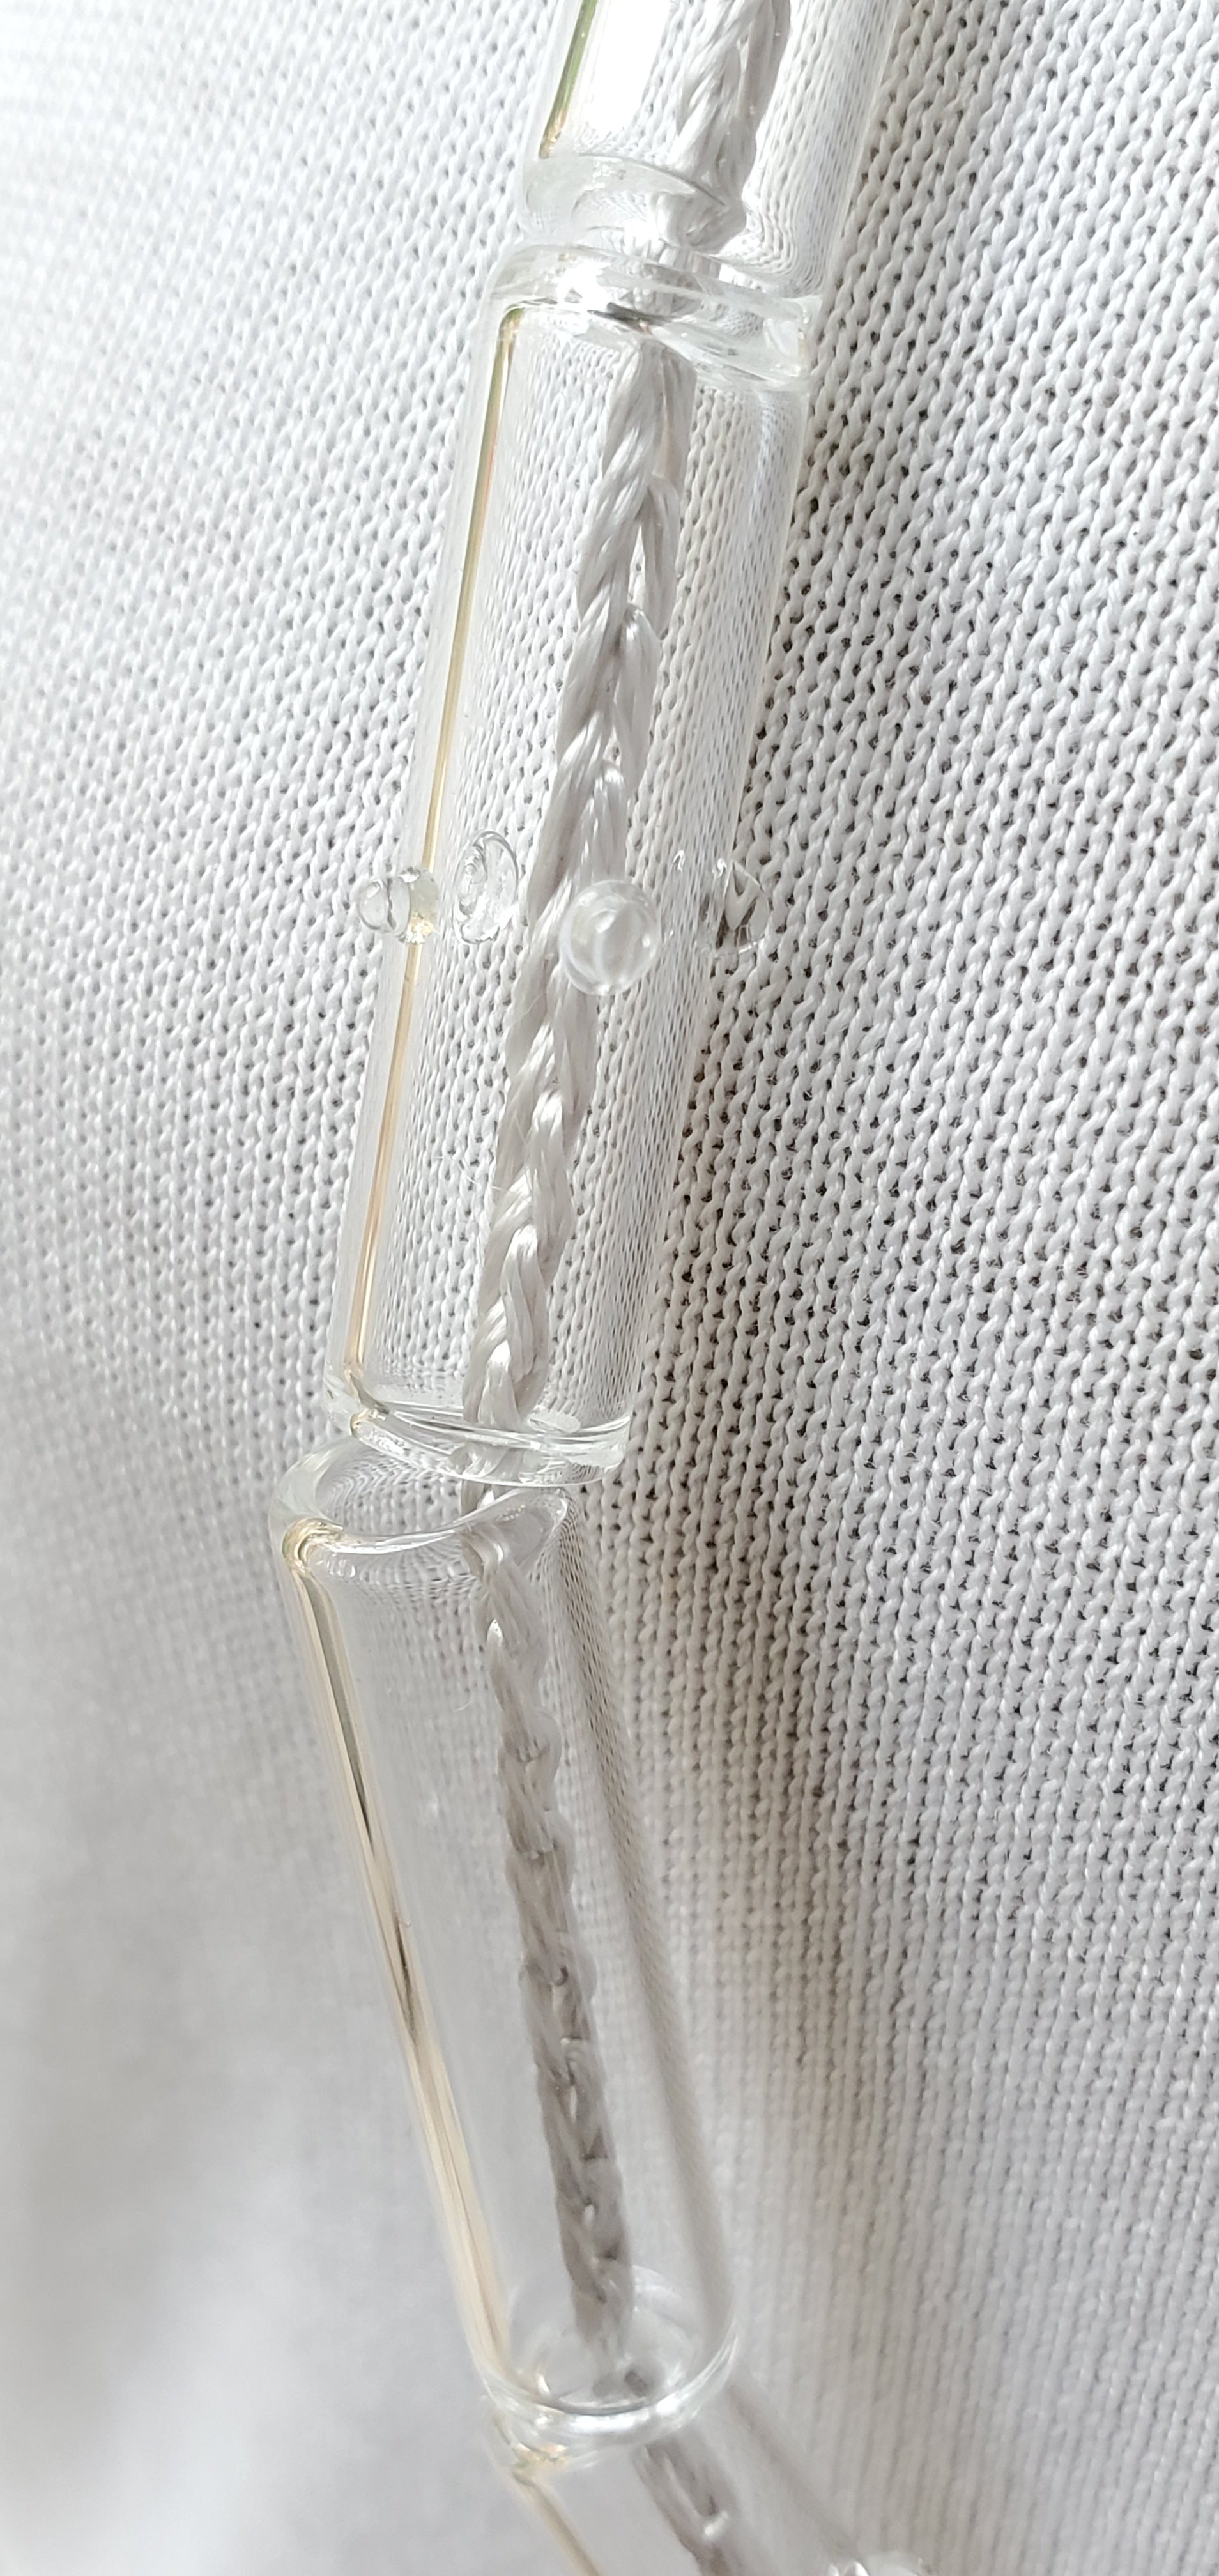 silver crochet cord clear glass tube necklace-small glass dots details-philadelphia